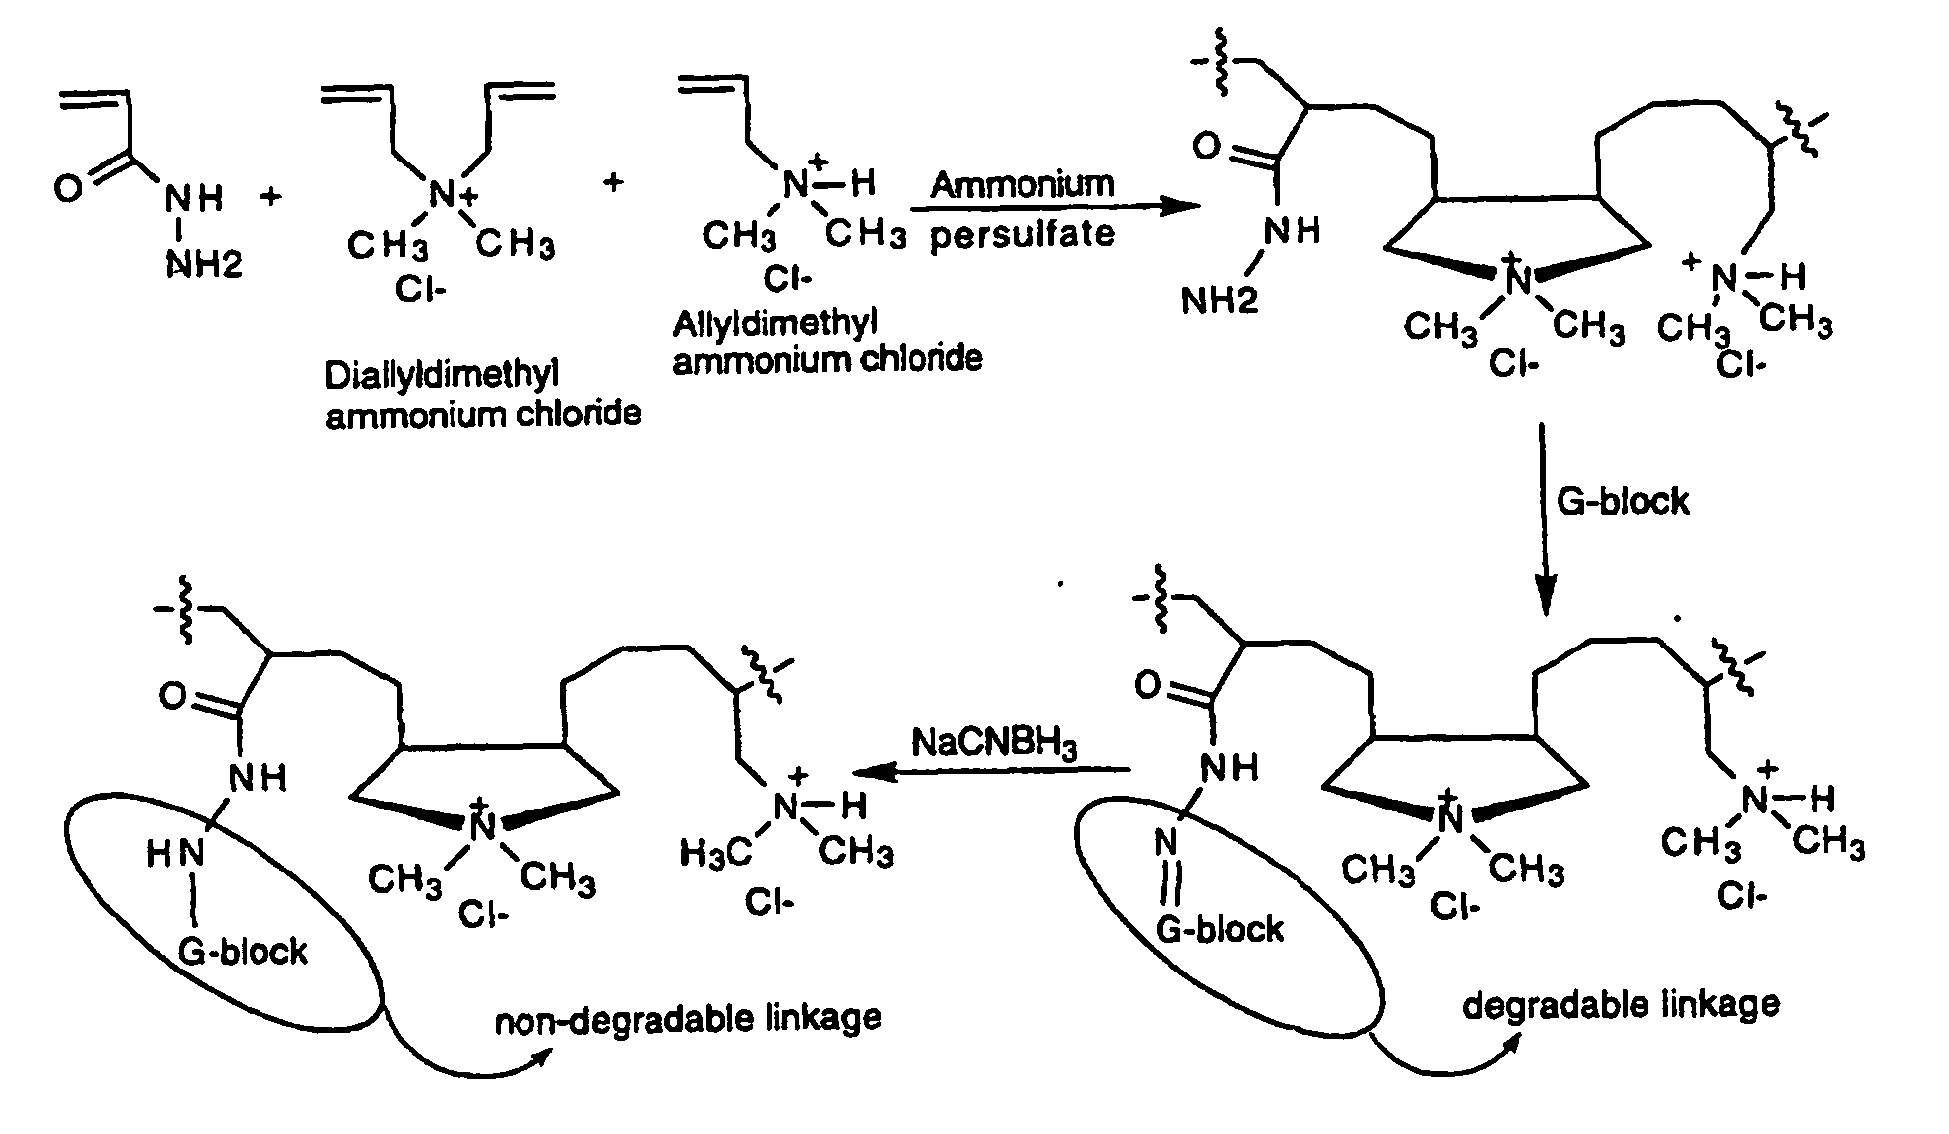 EP0927196B1 - Polymers containing polysaccharides such as alginates